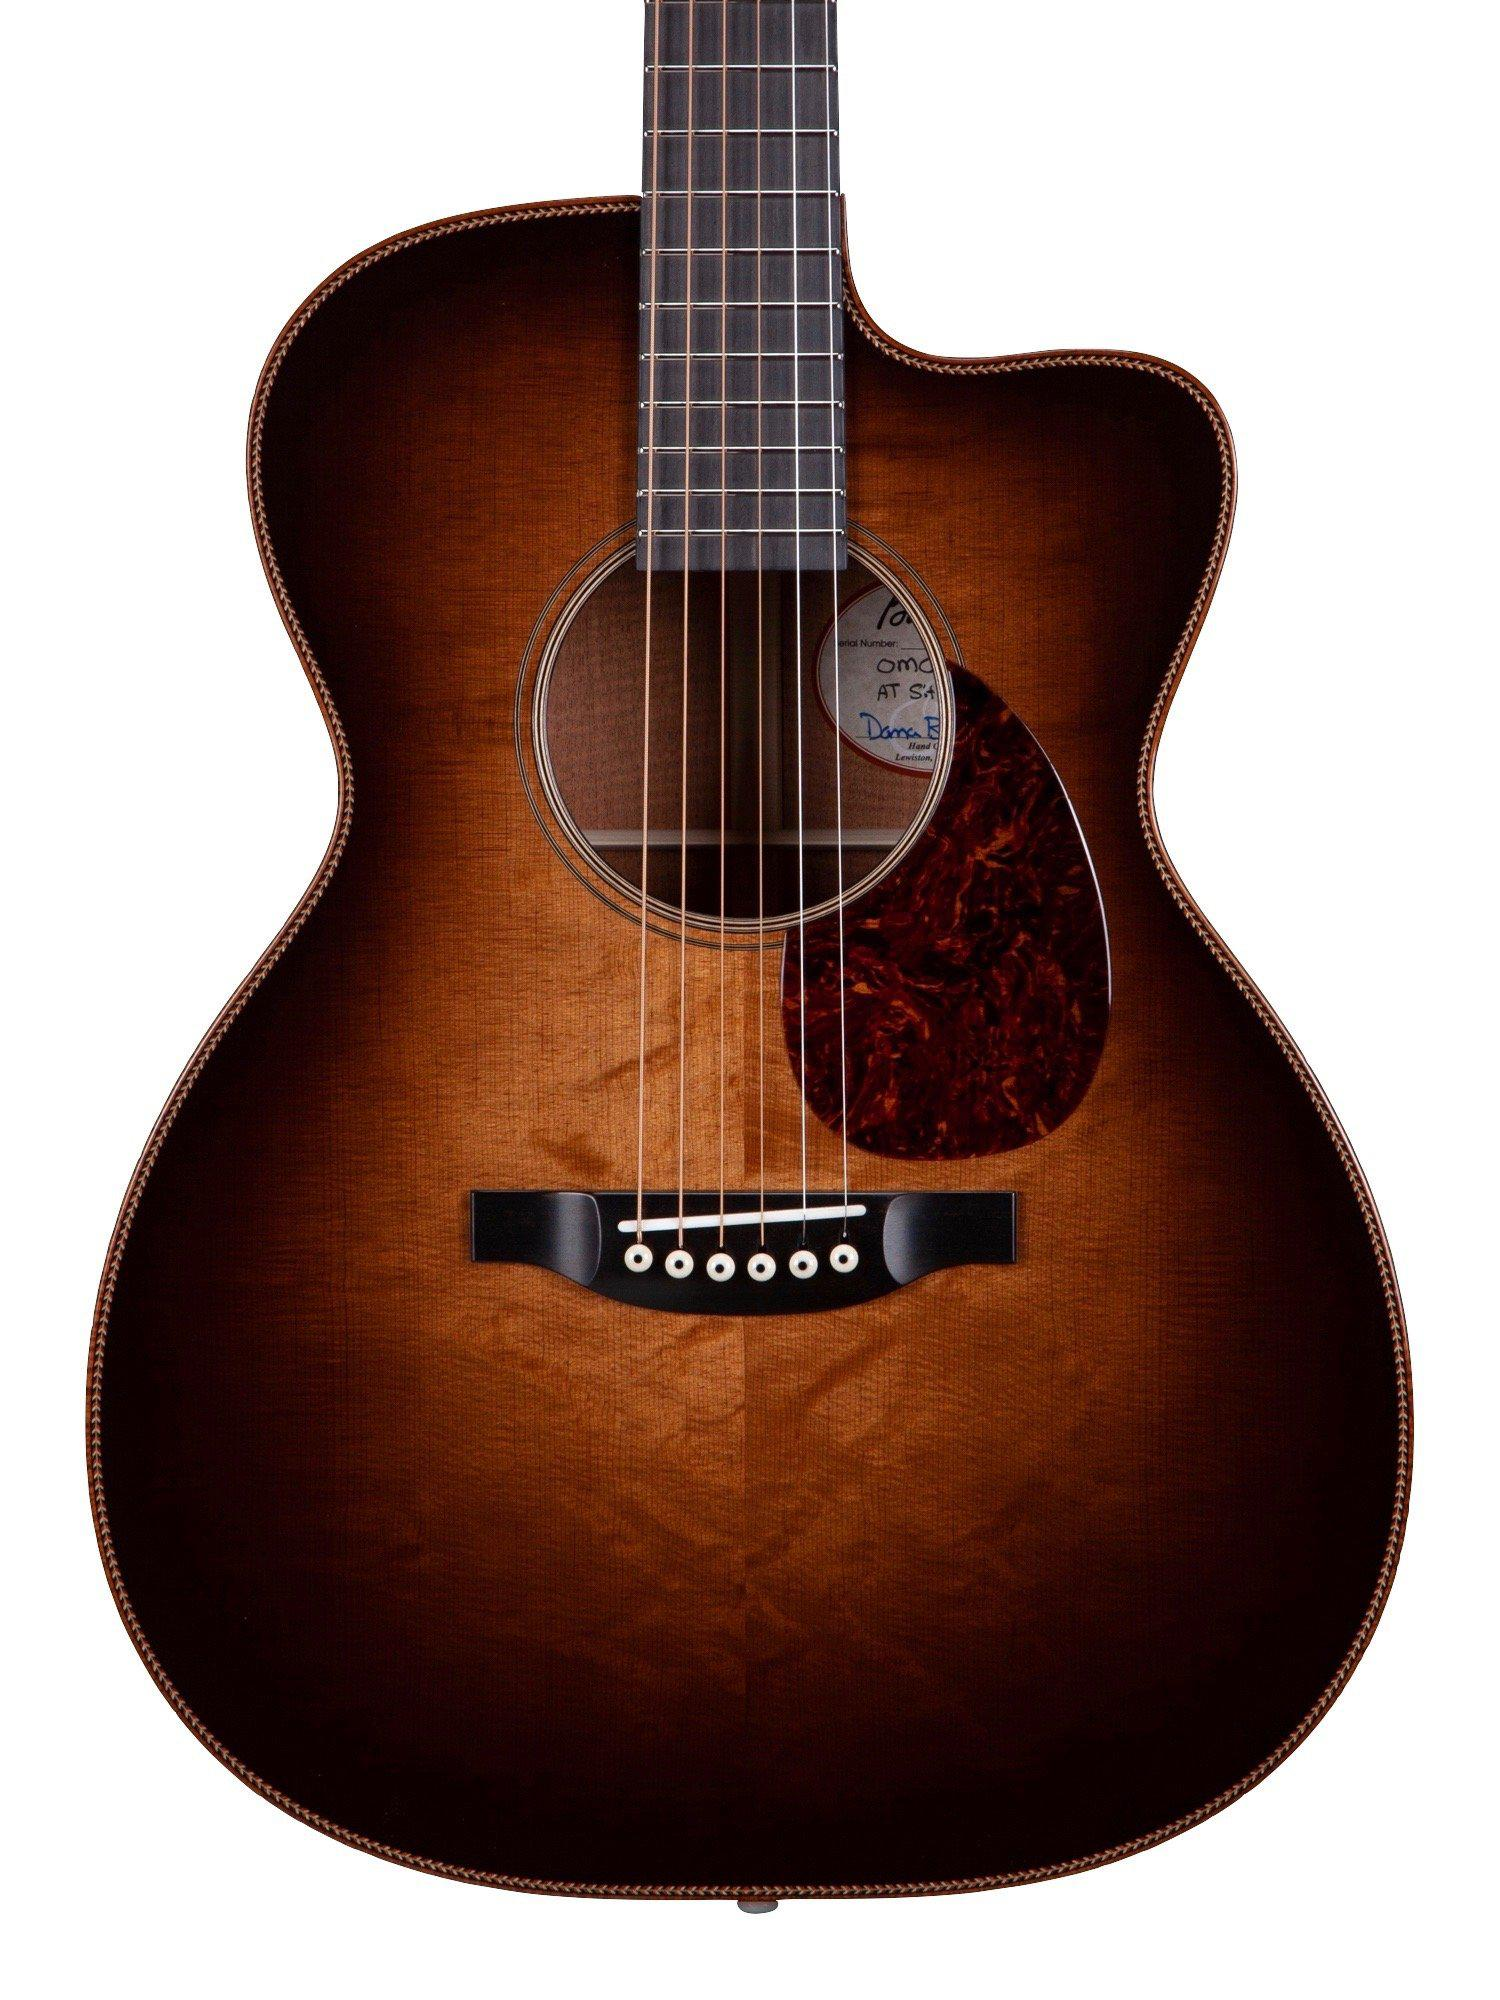 Bourgeois OMC DB Signature Large Sound Hole Custom (Pre-order) February Delivery - Bourgeois Guitars - Heartbreaker Guitars